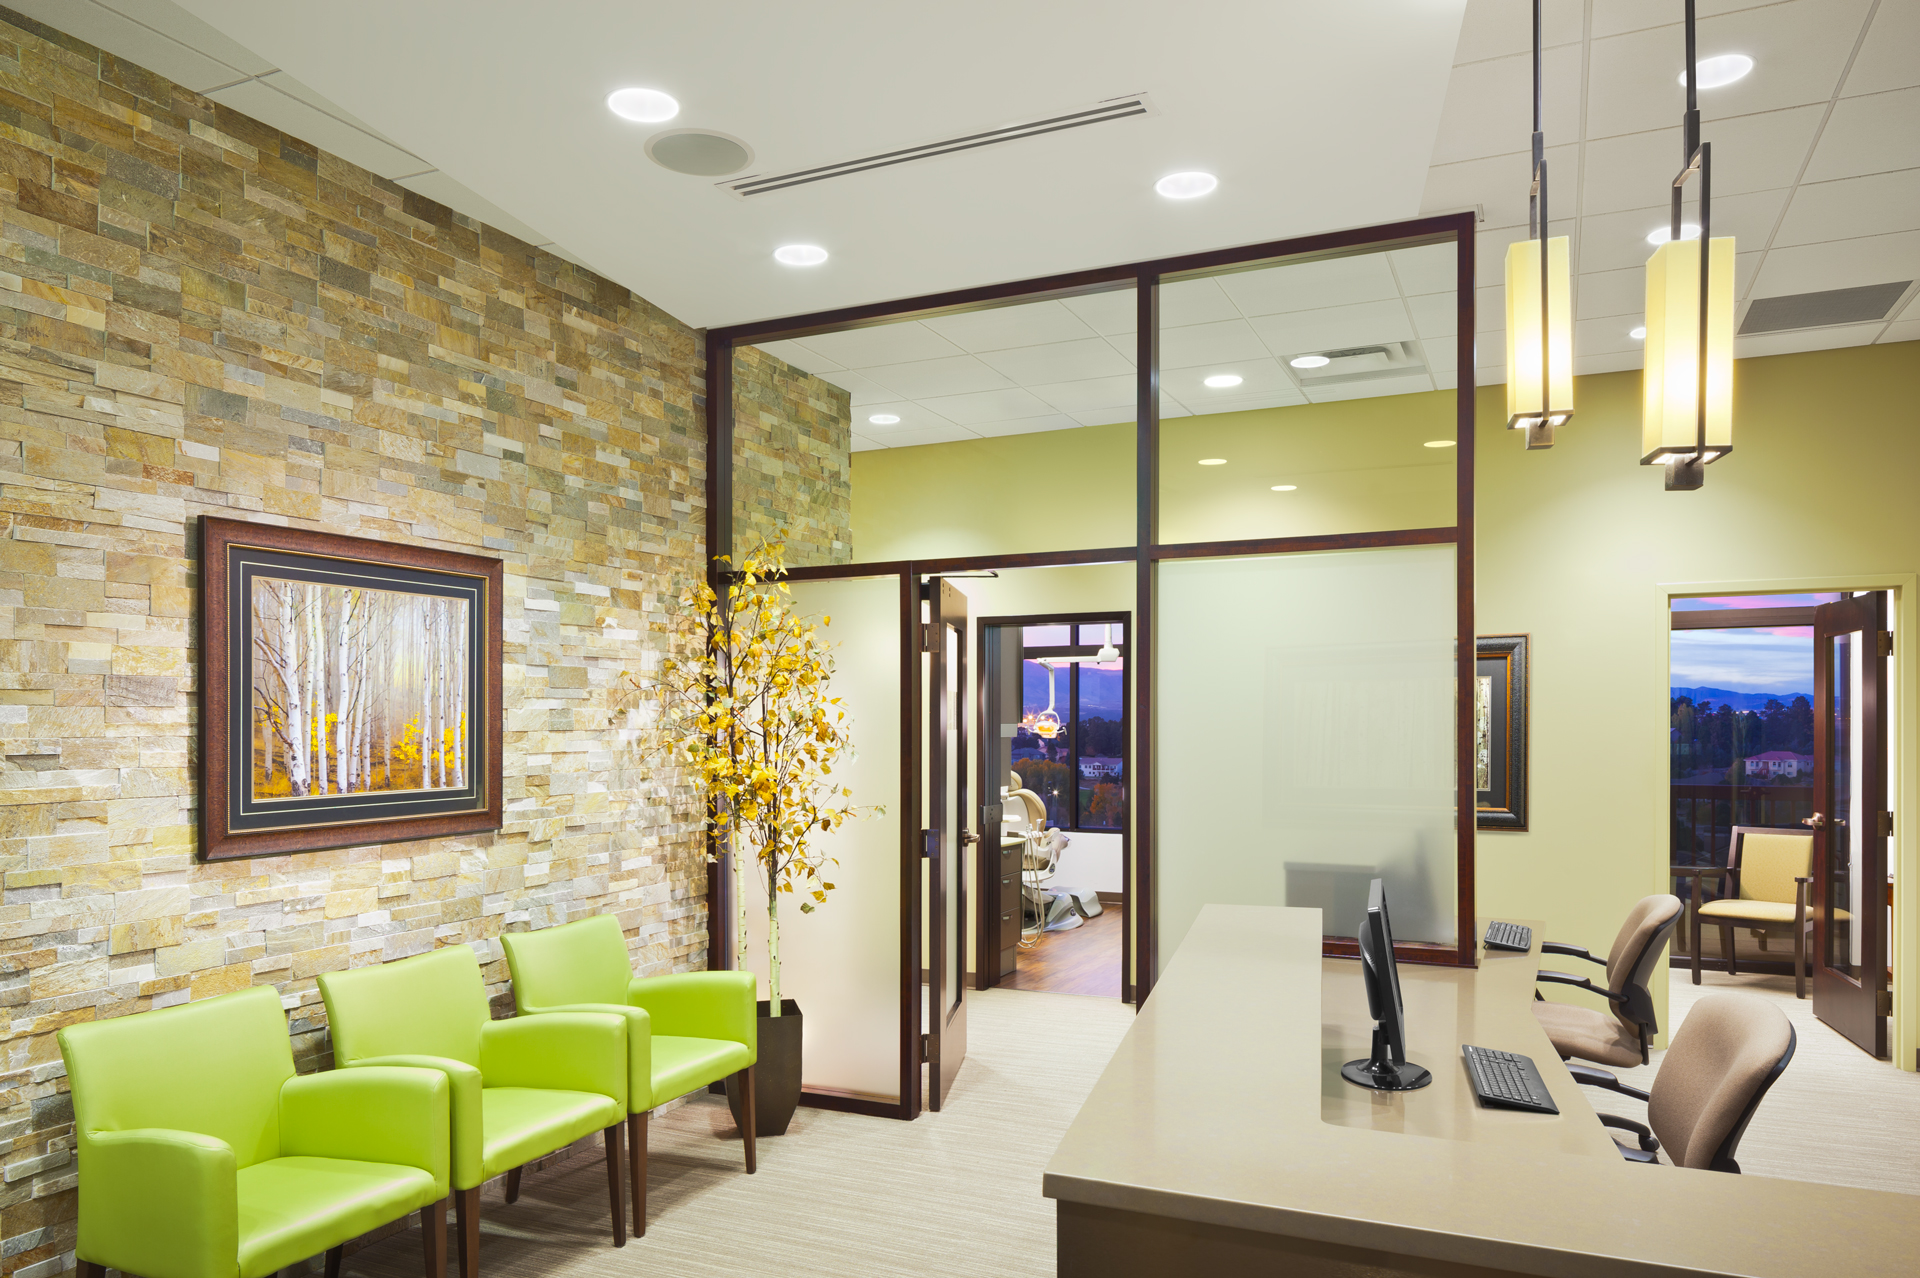 Aspen Endodontics - Waiting & Reception